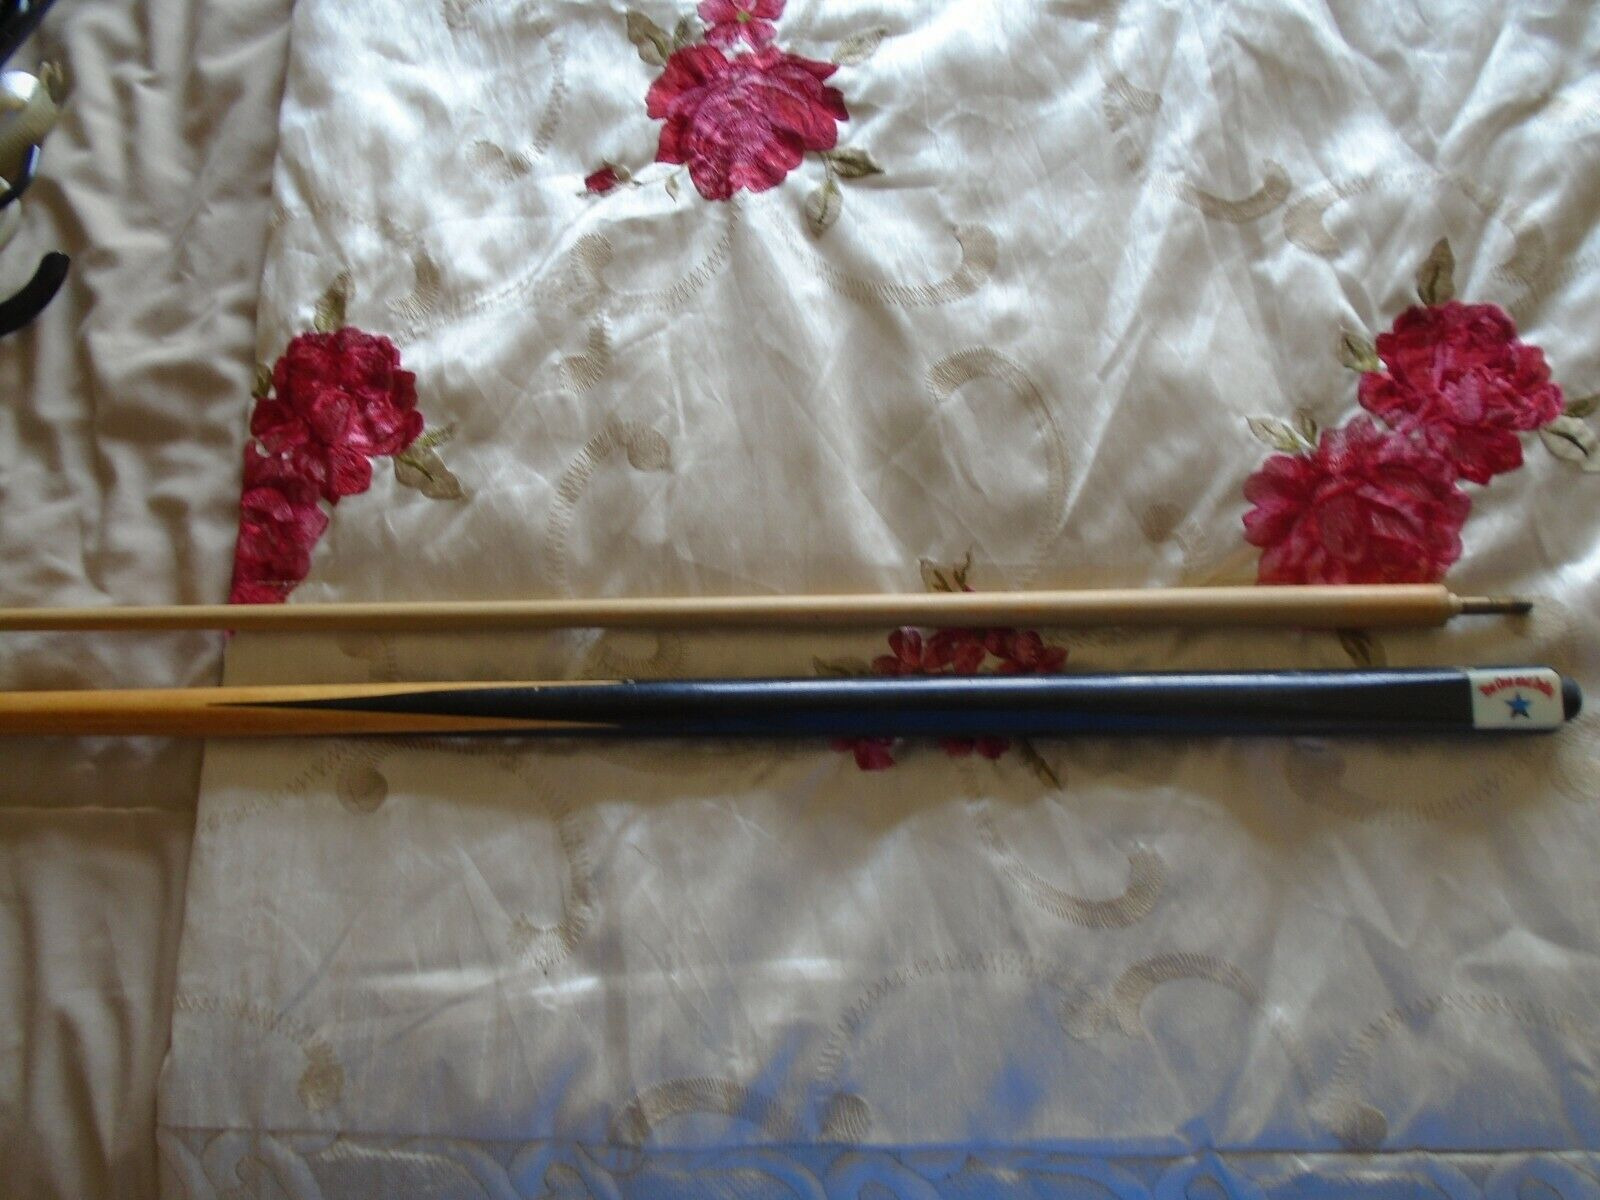 The One and Only snooker cue no bag